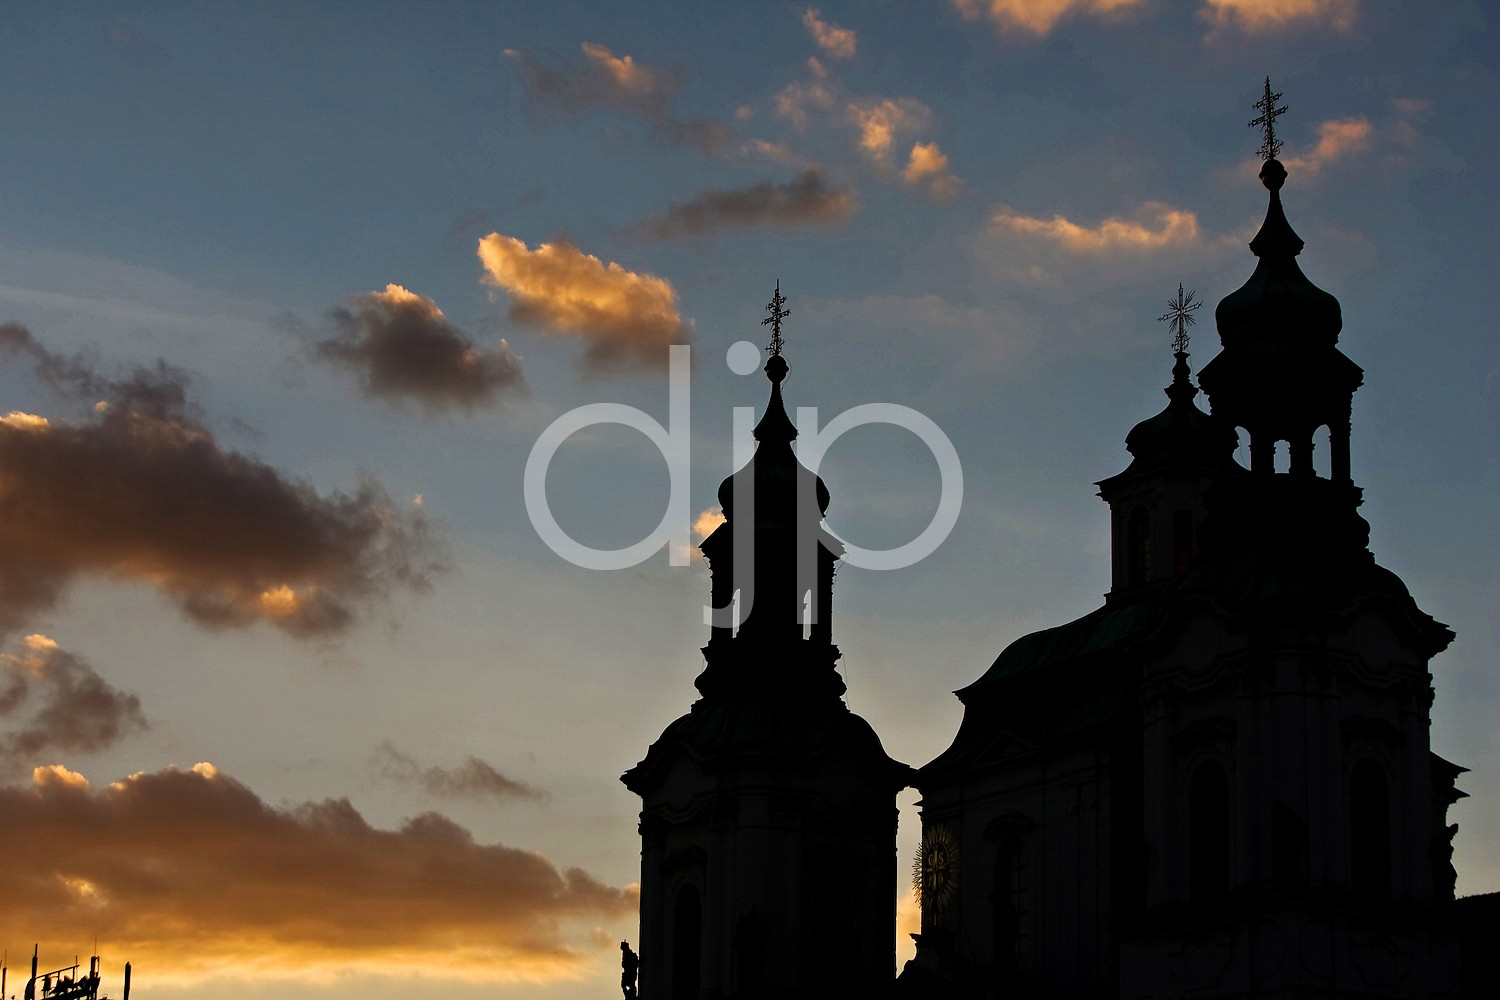 St. Nicholas Church Silhouette